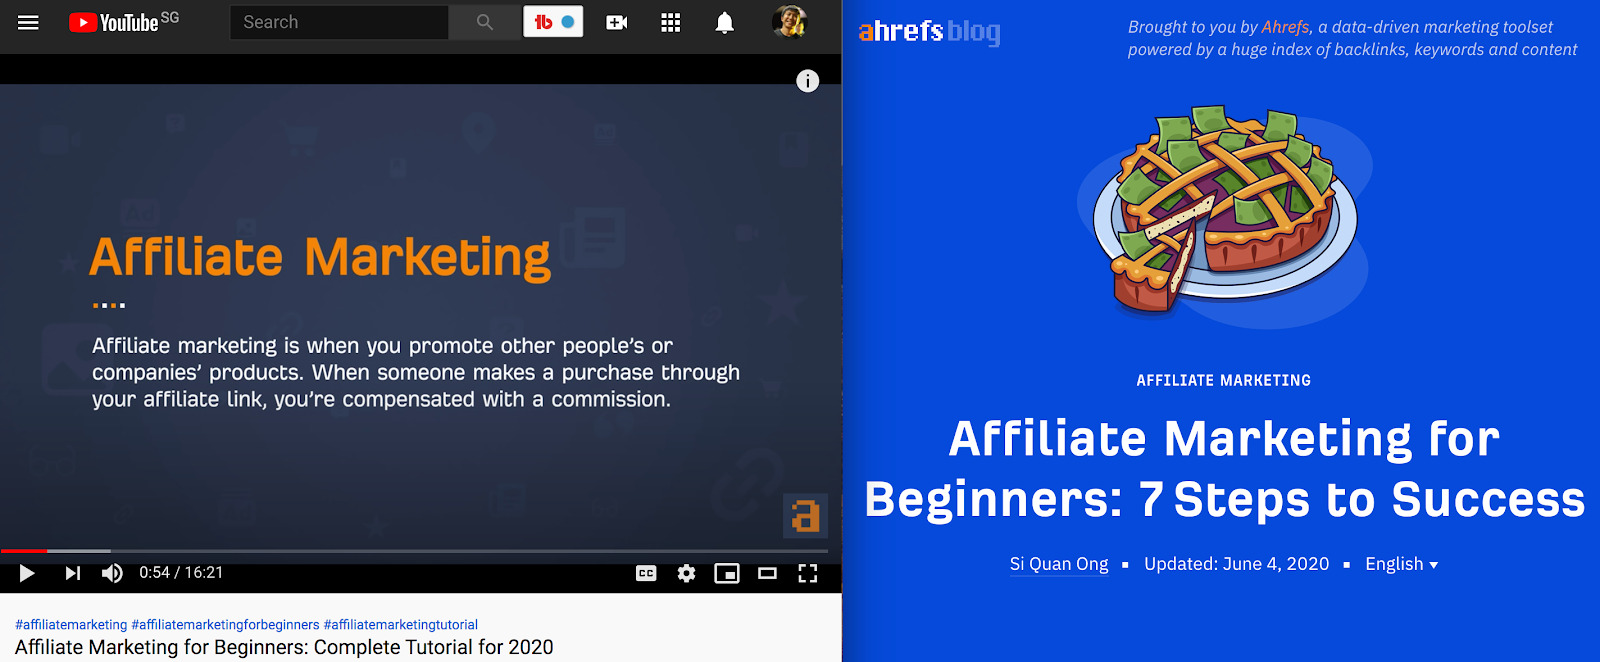 Affiliate Marketing for Beginners Complete Tutorial for 2020 YouTube and Affiliate Marketing for Beginners 7 Steps to Success